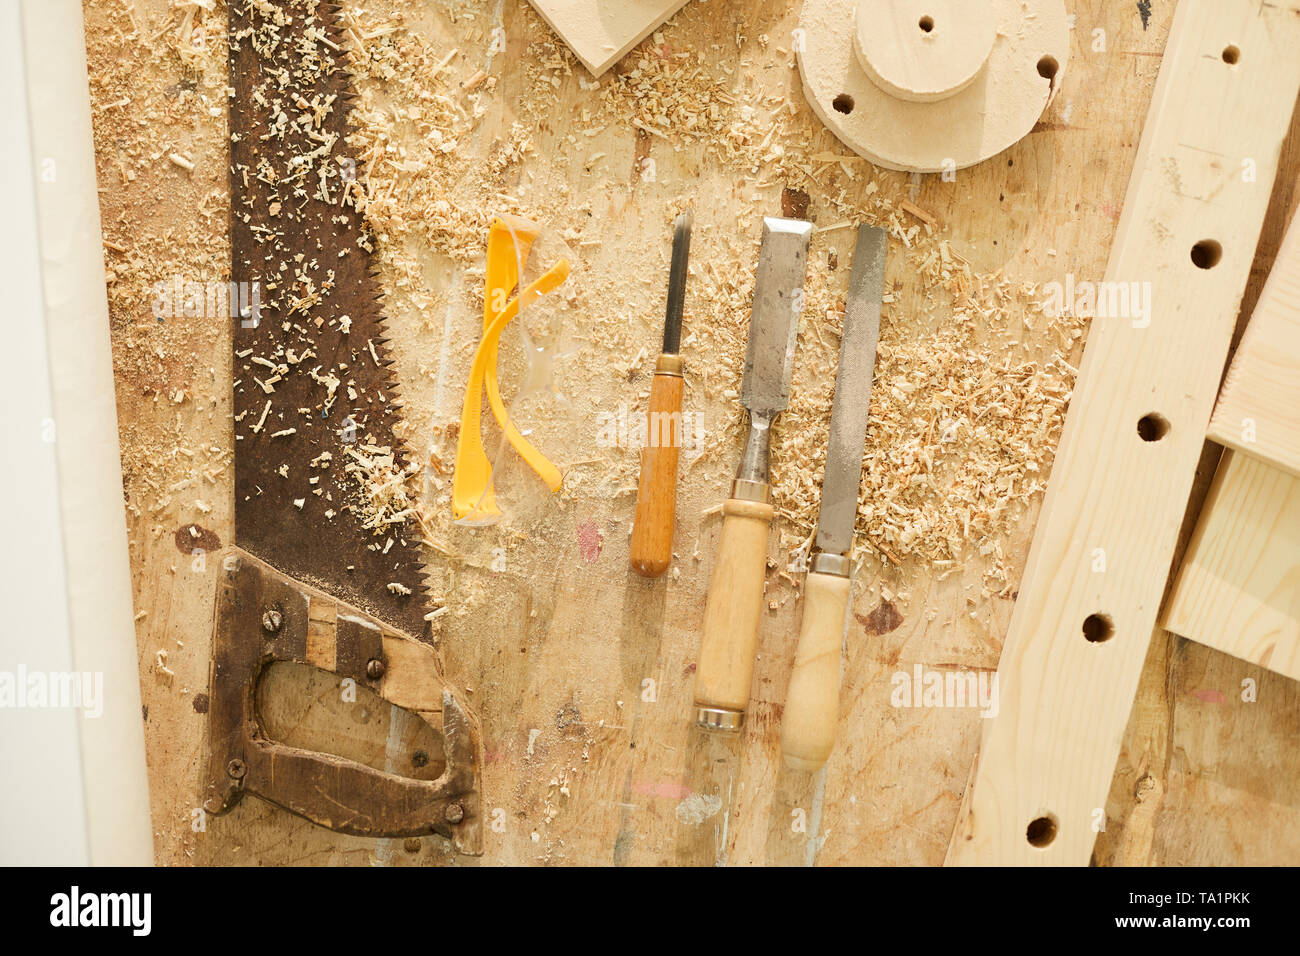 Above view background of carpenters tools on table in workshop dusted with wood shavings, copy space - Stock Image